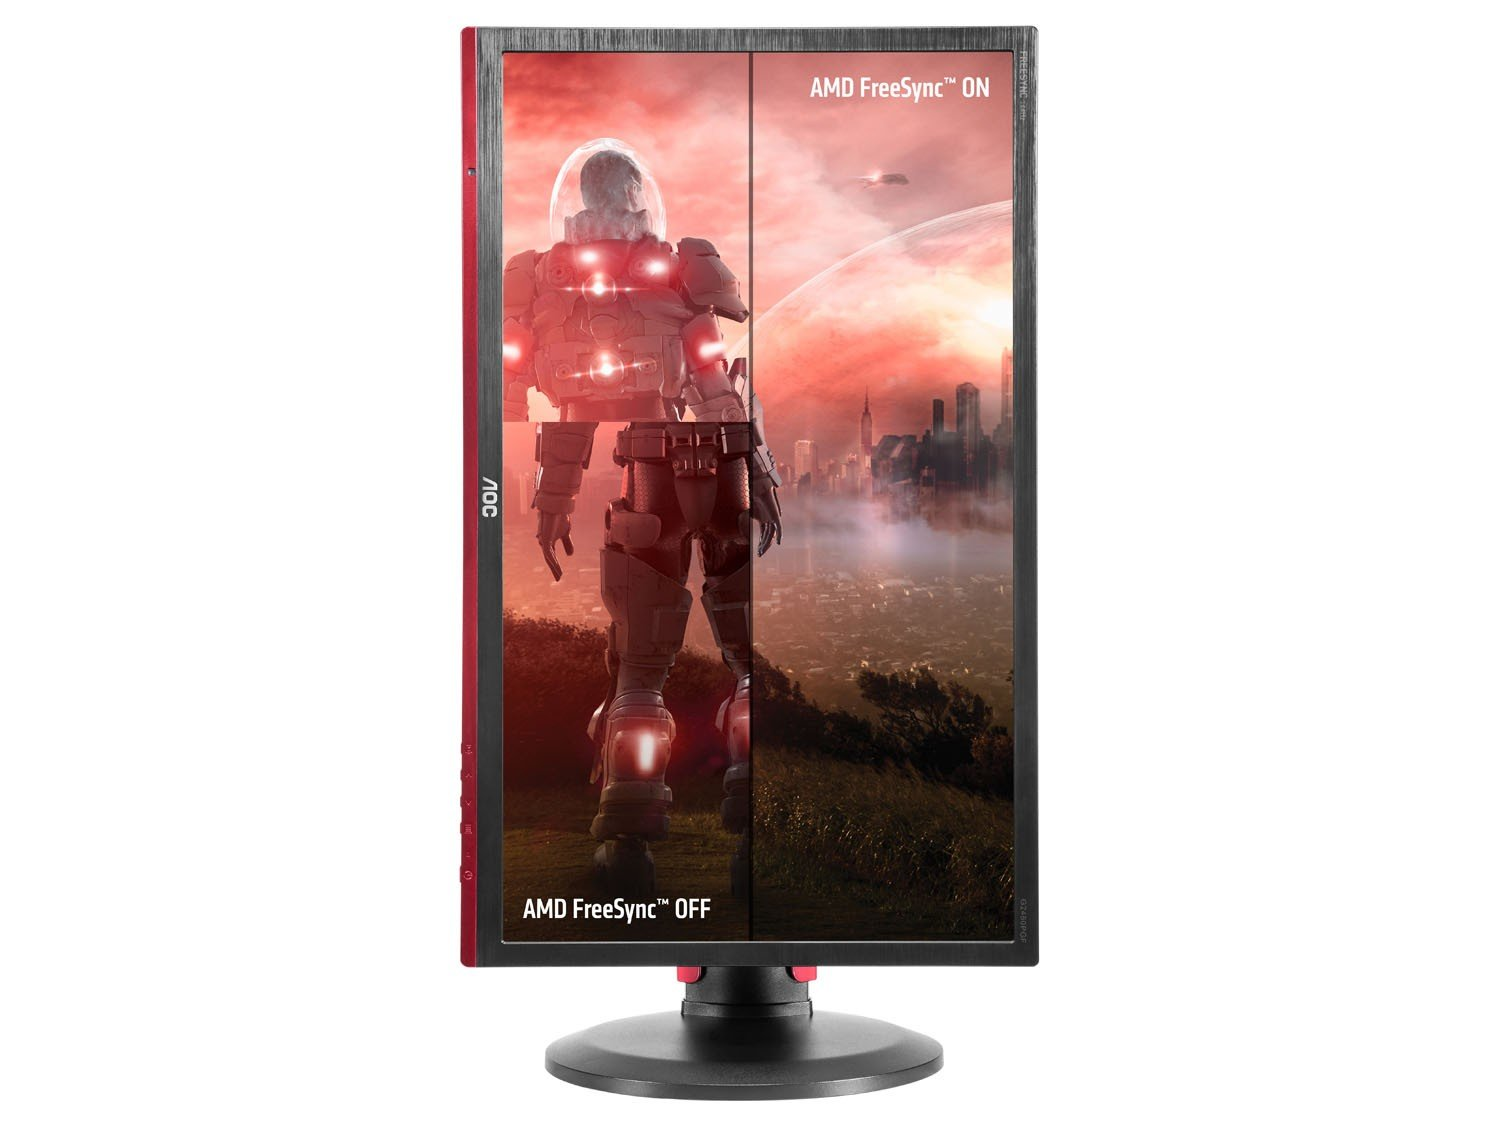 Foto 7 - Monitor Gamer Full HD AOC LED Widescreen 24 - Hero G2460PF